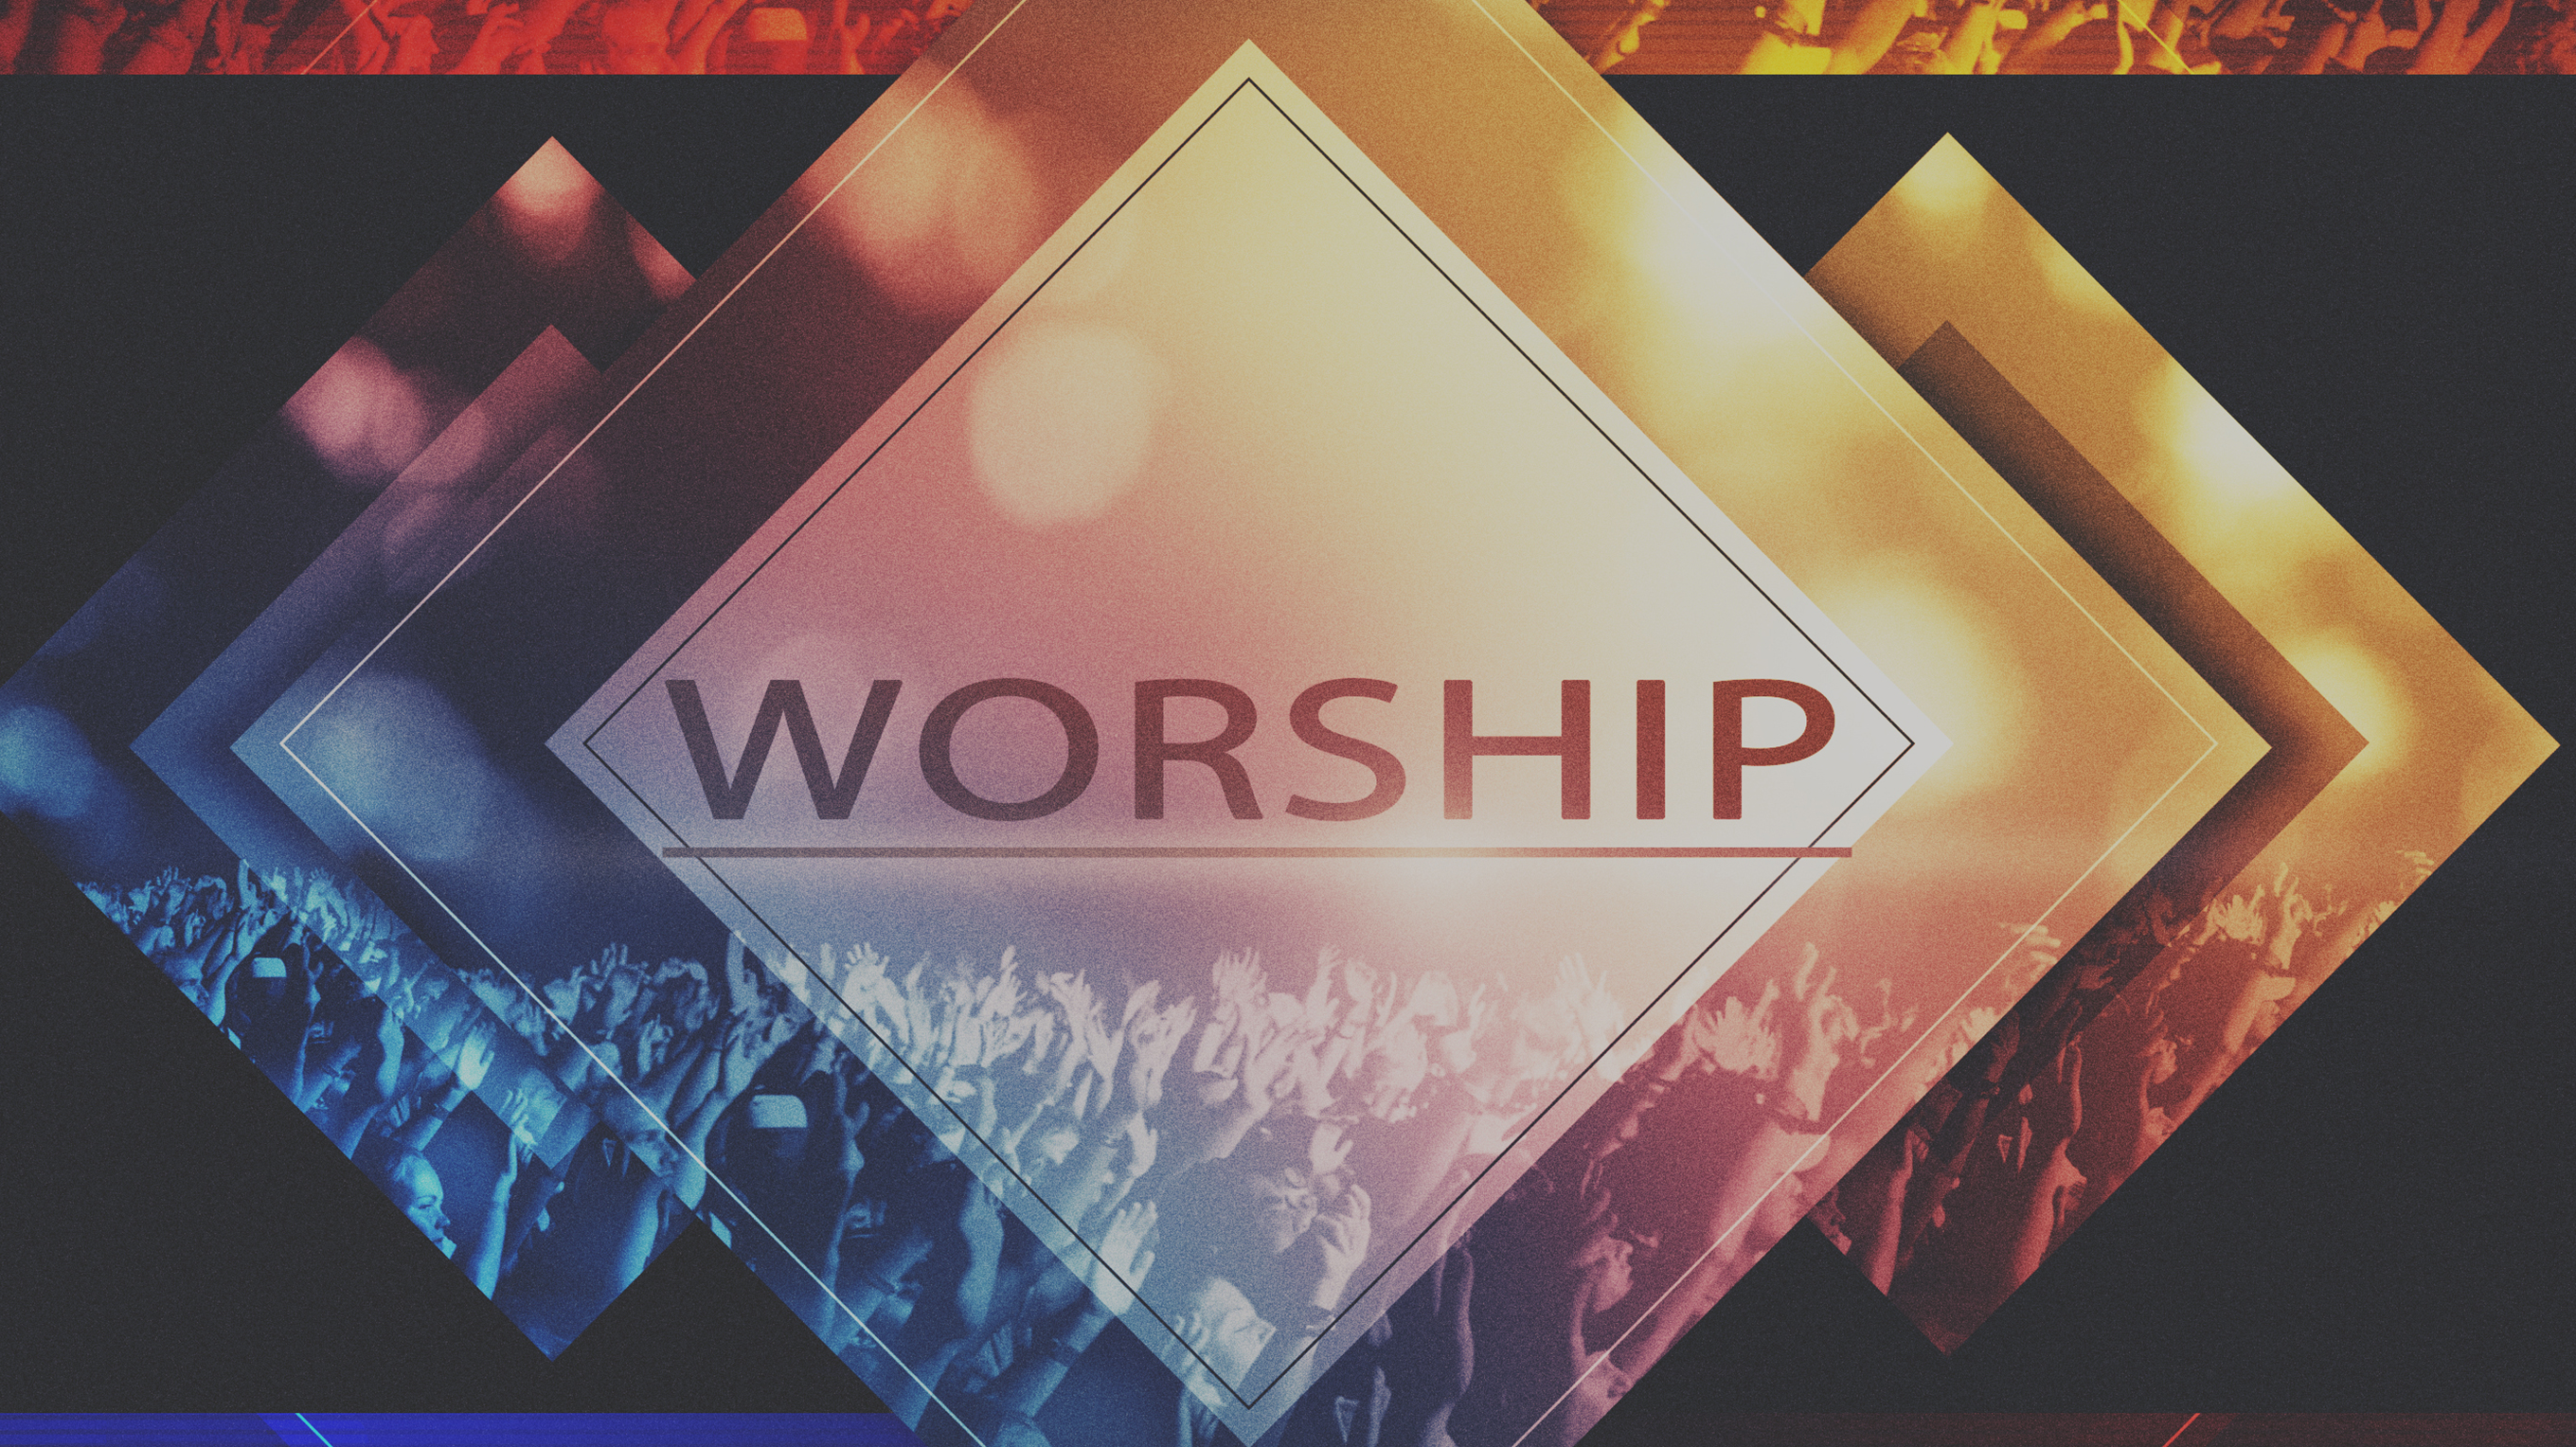 !sp - Worship2 image